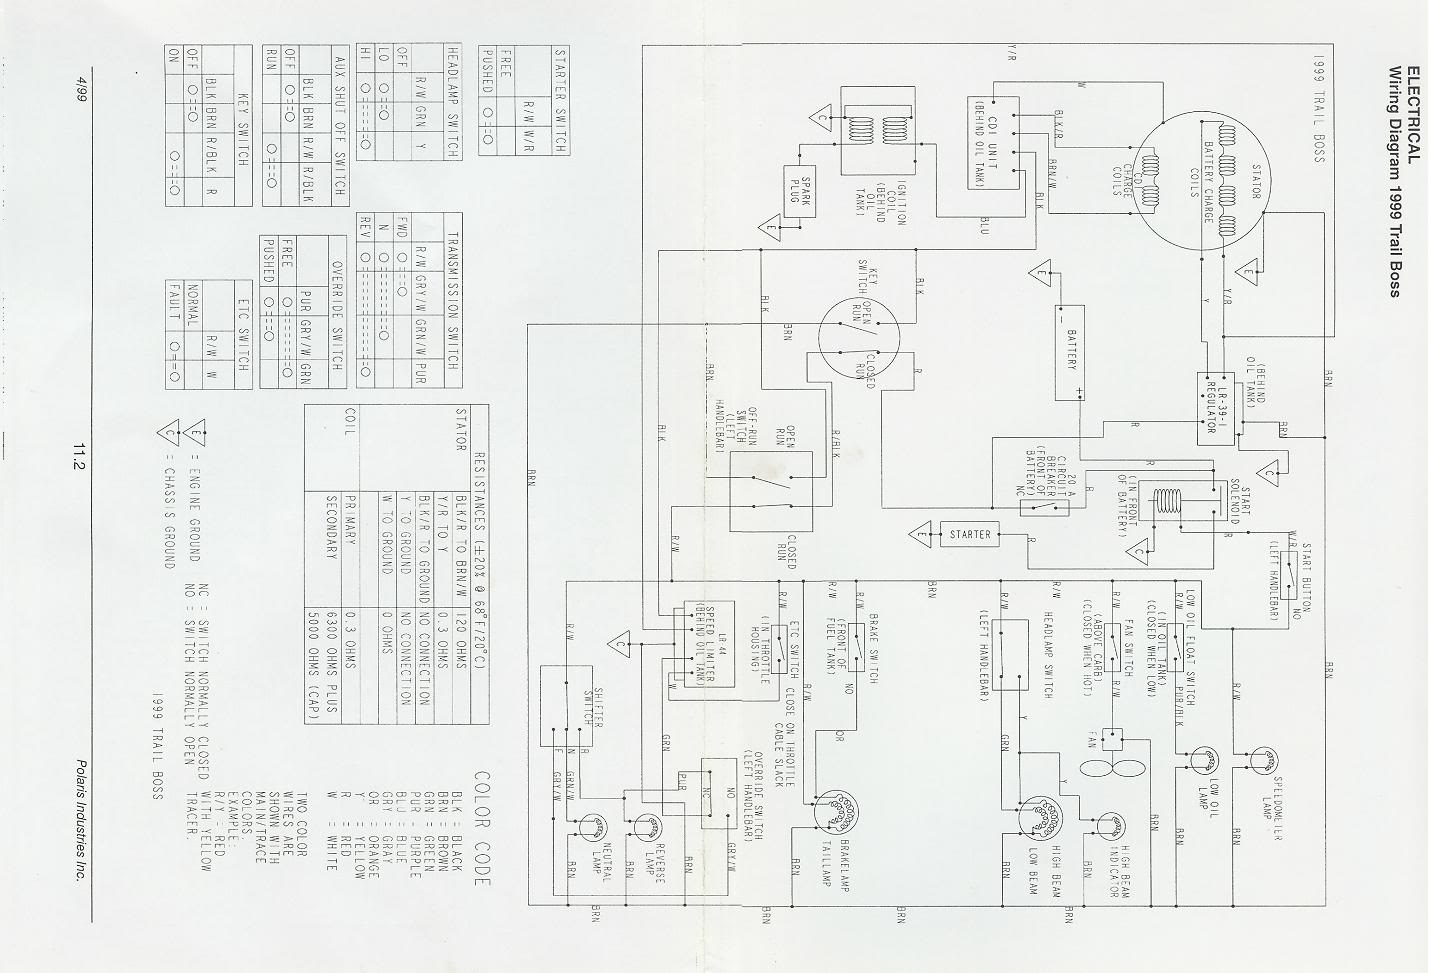 05 Polari Atv Wiring Diagram